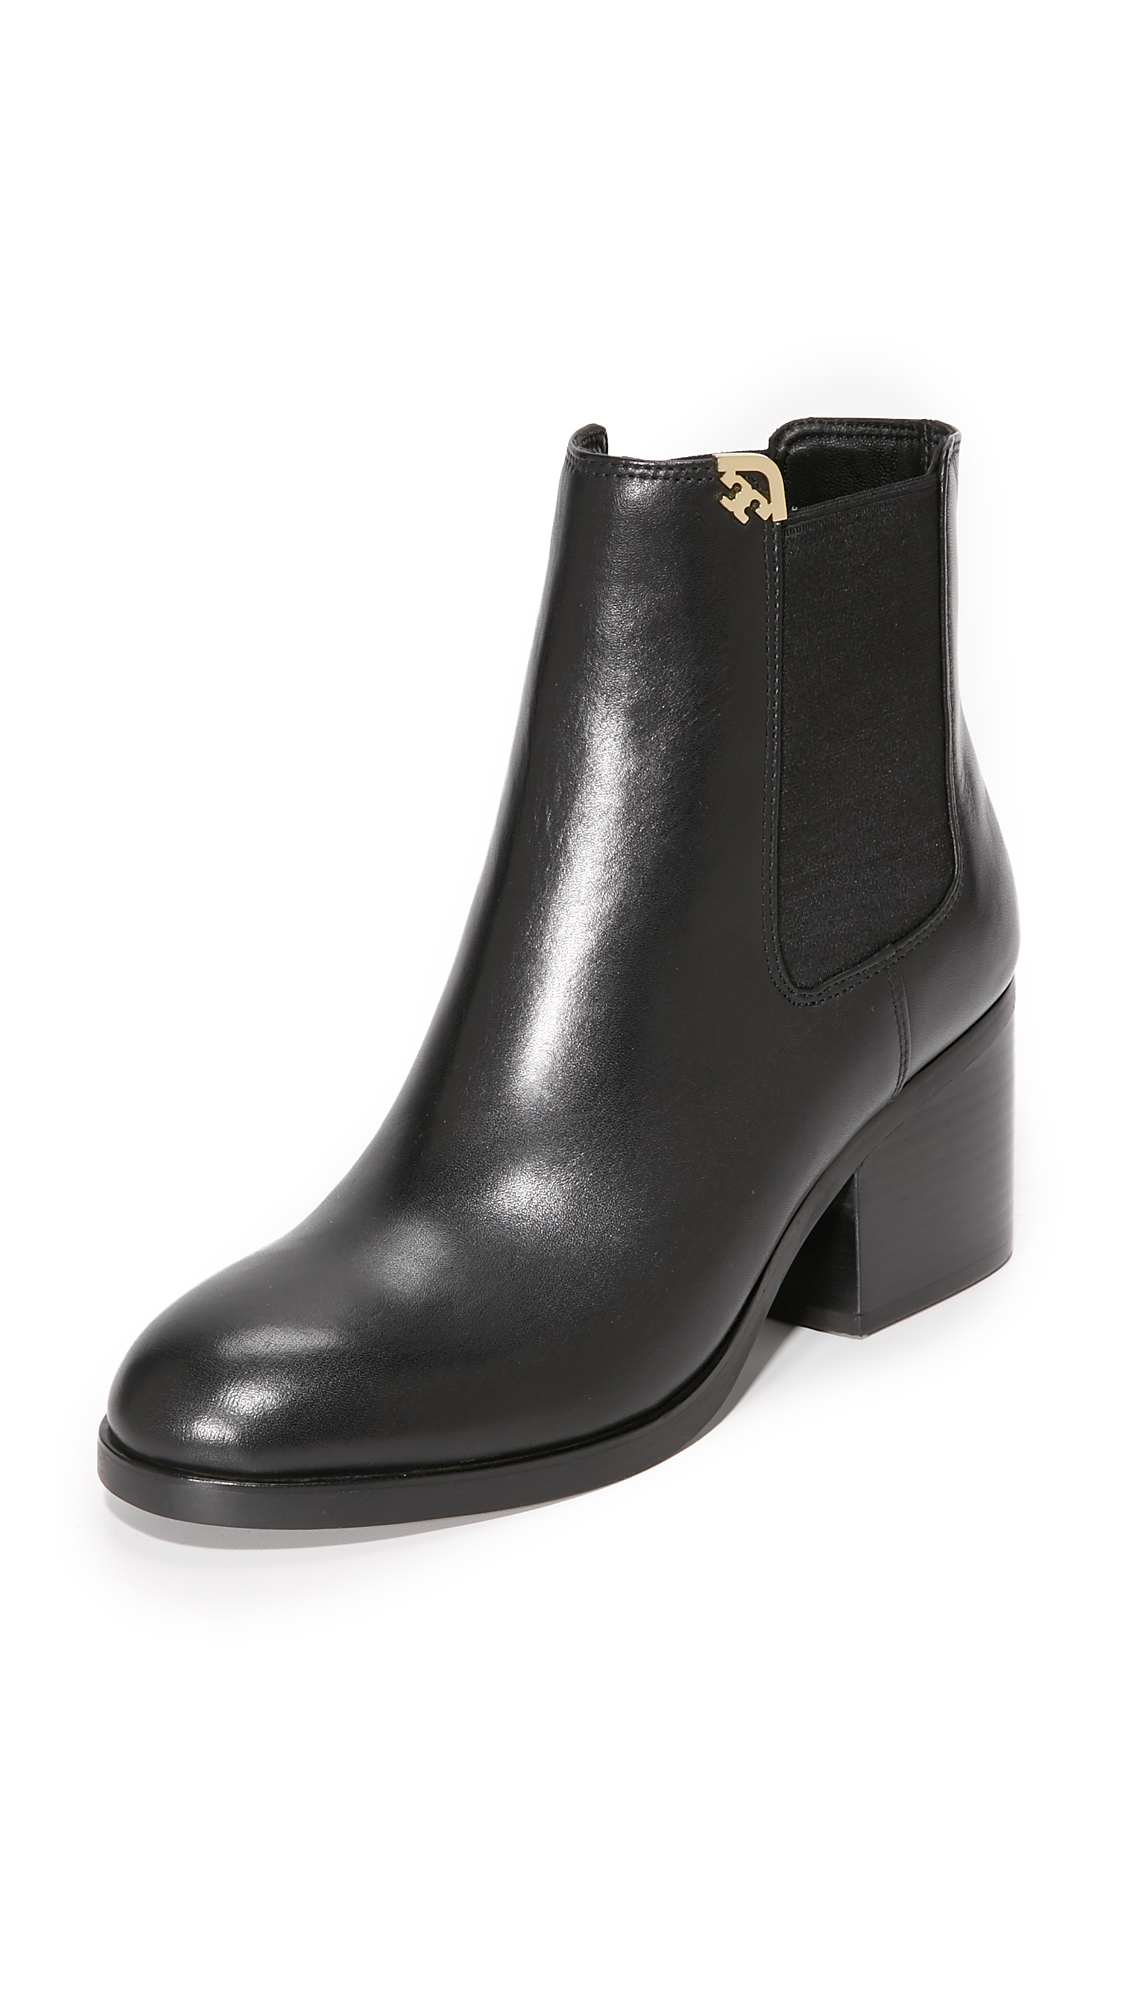 Tory Burch Nicola Booties - Black